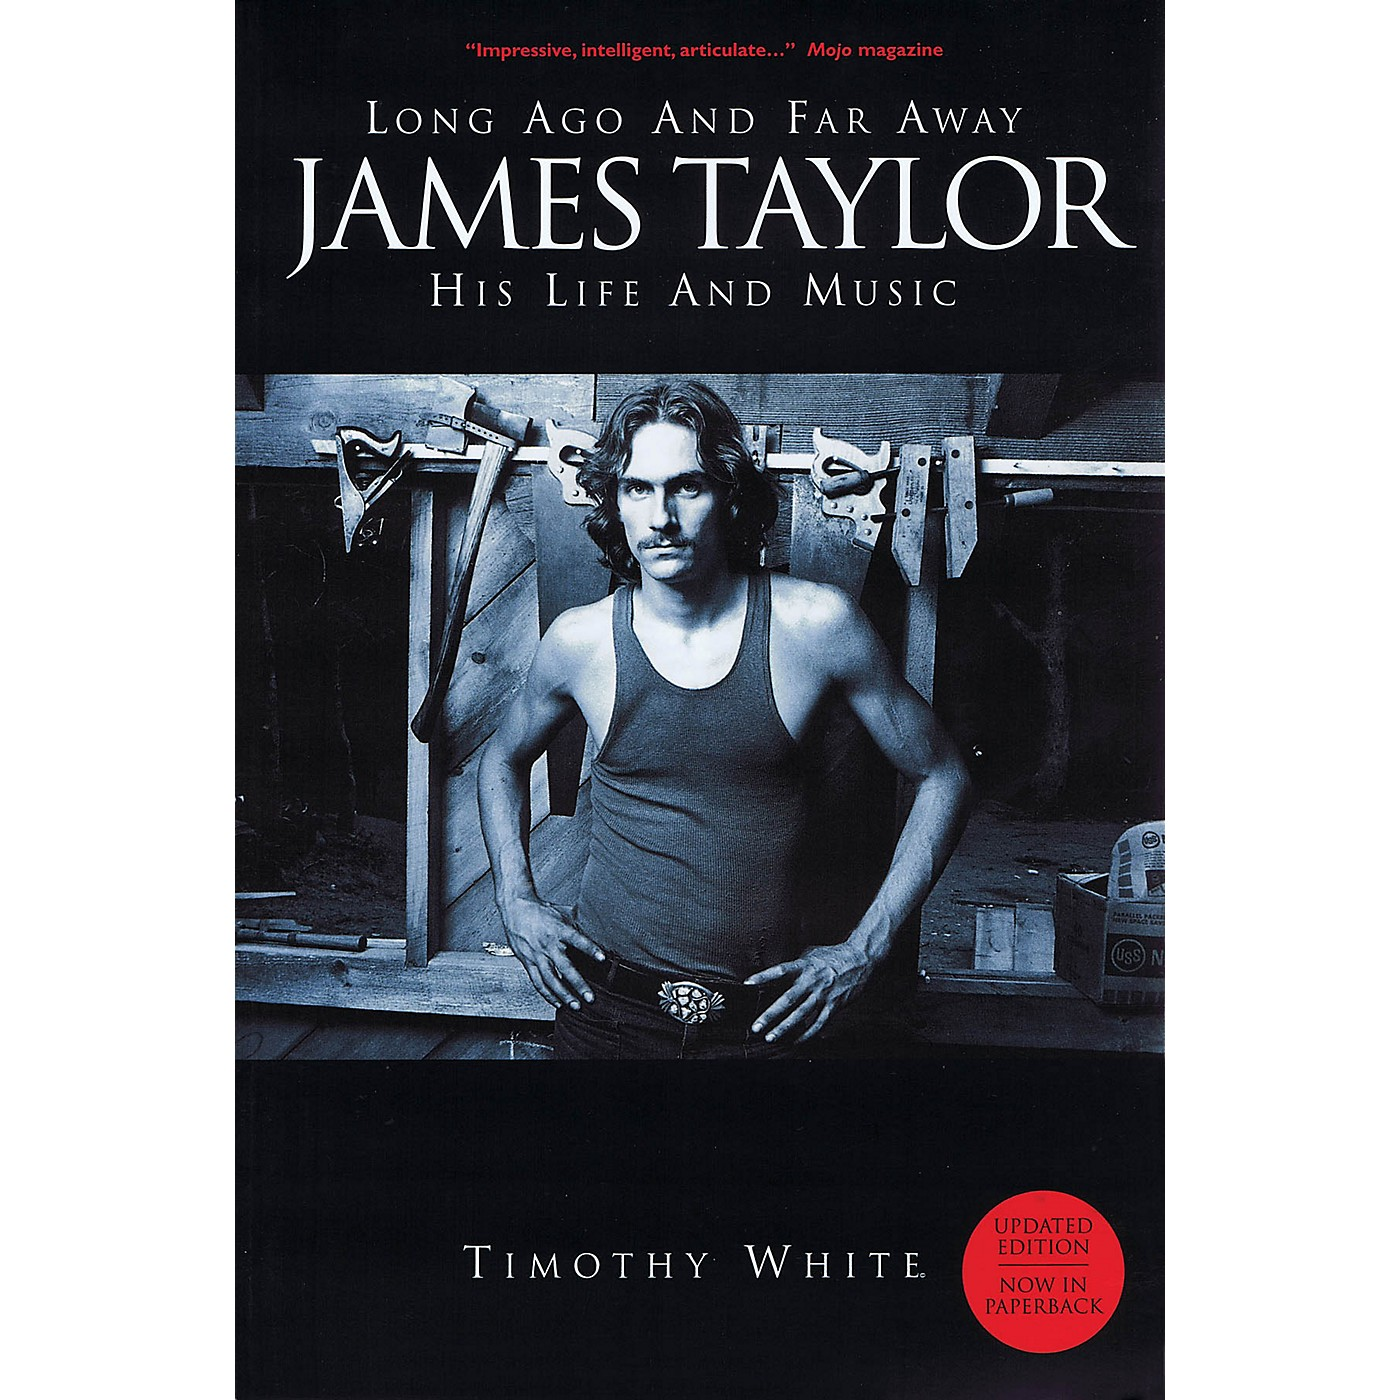 Omnibus Long Ago and Far Away - James Taylor: His Life and Music Omnibus Press Series Softcover thumbnail